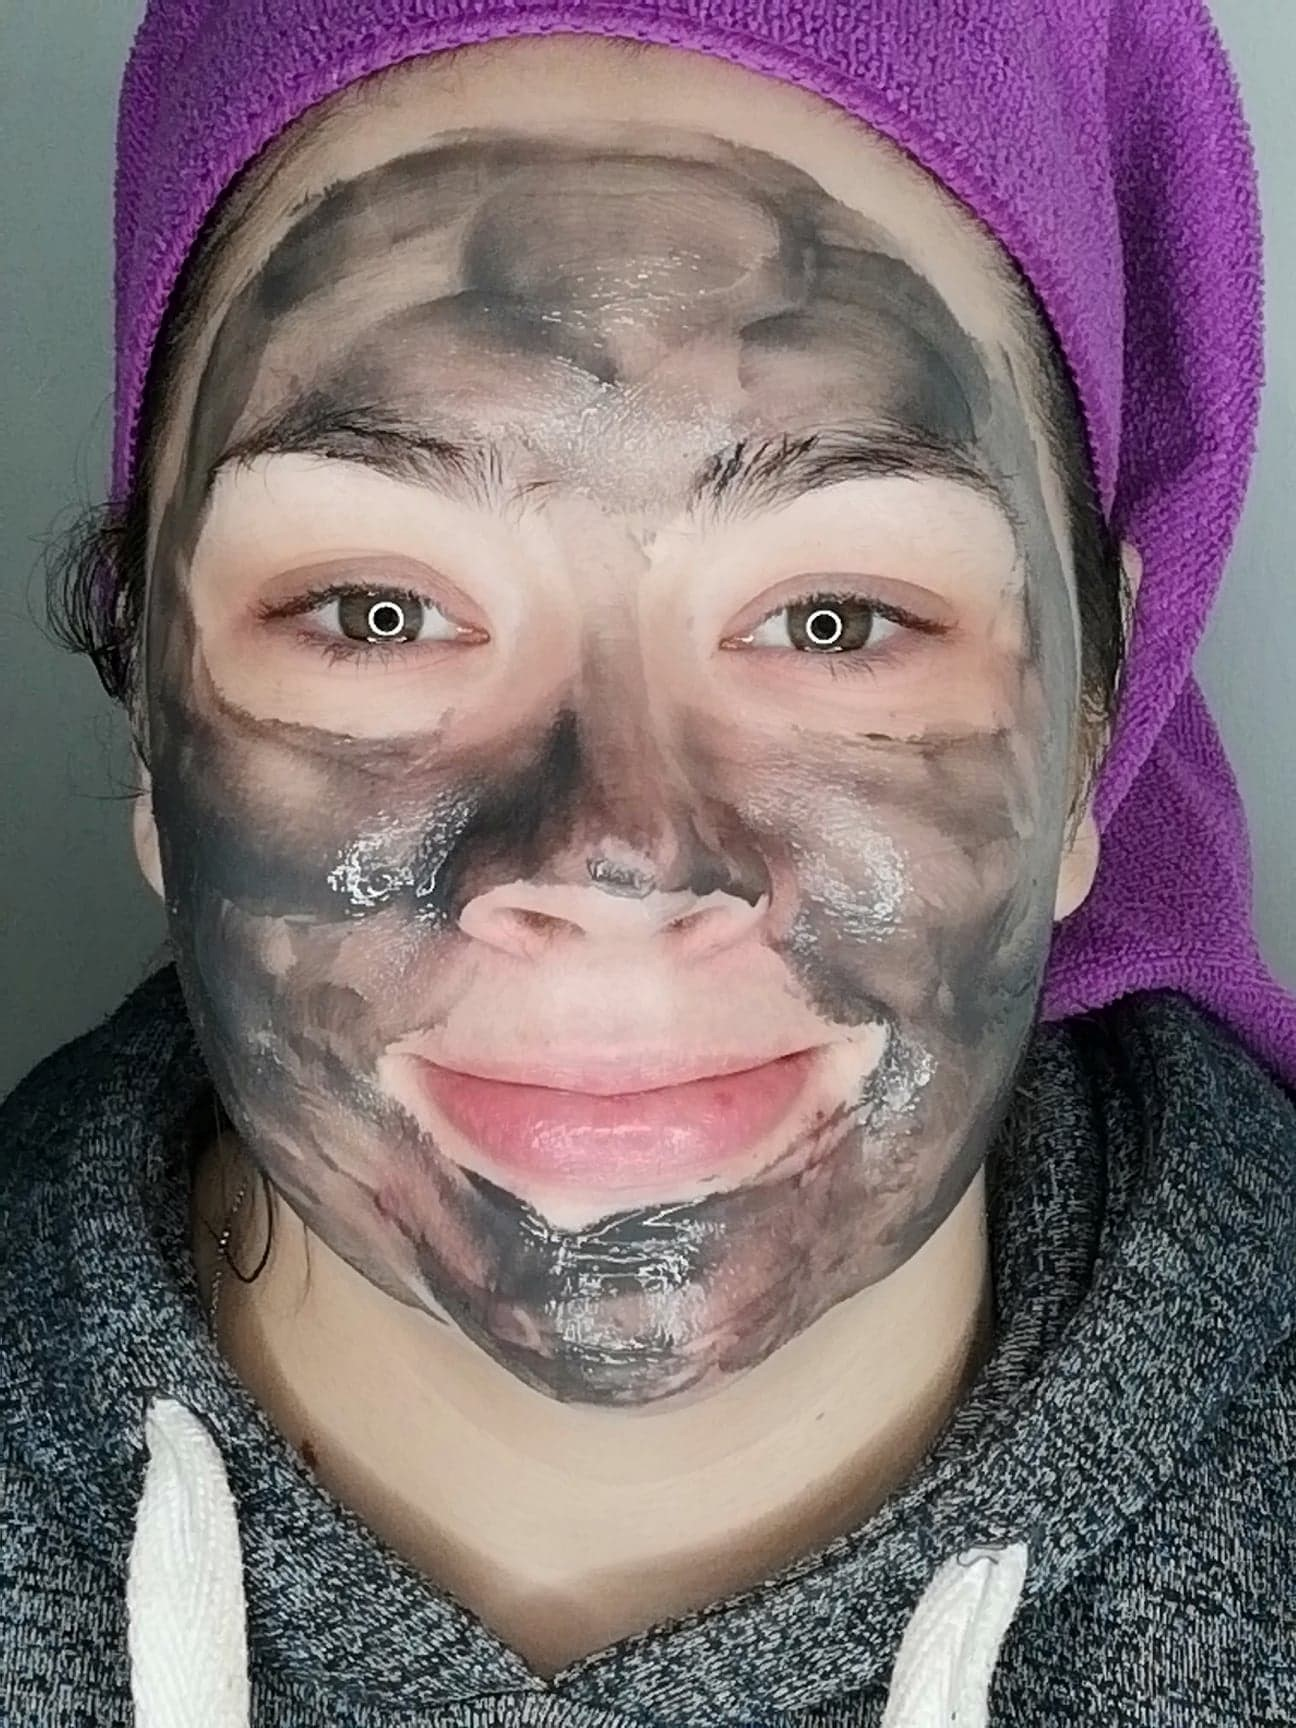 Mud Masks - Draw out impurities